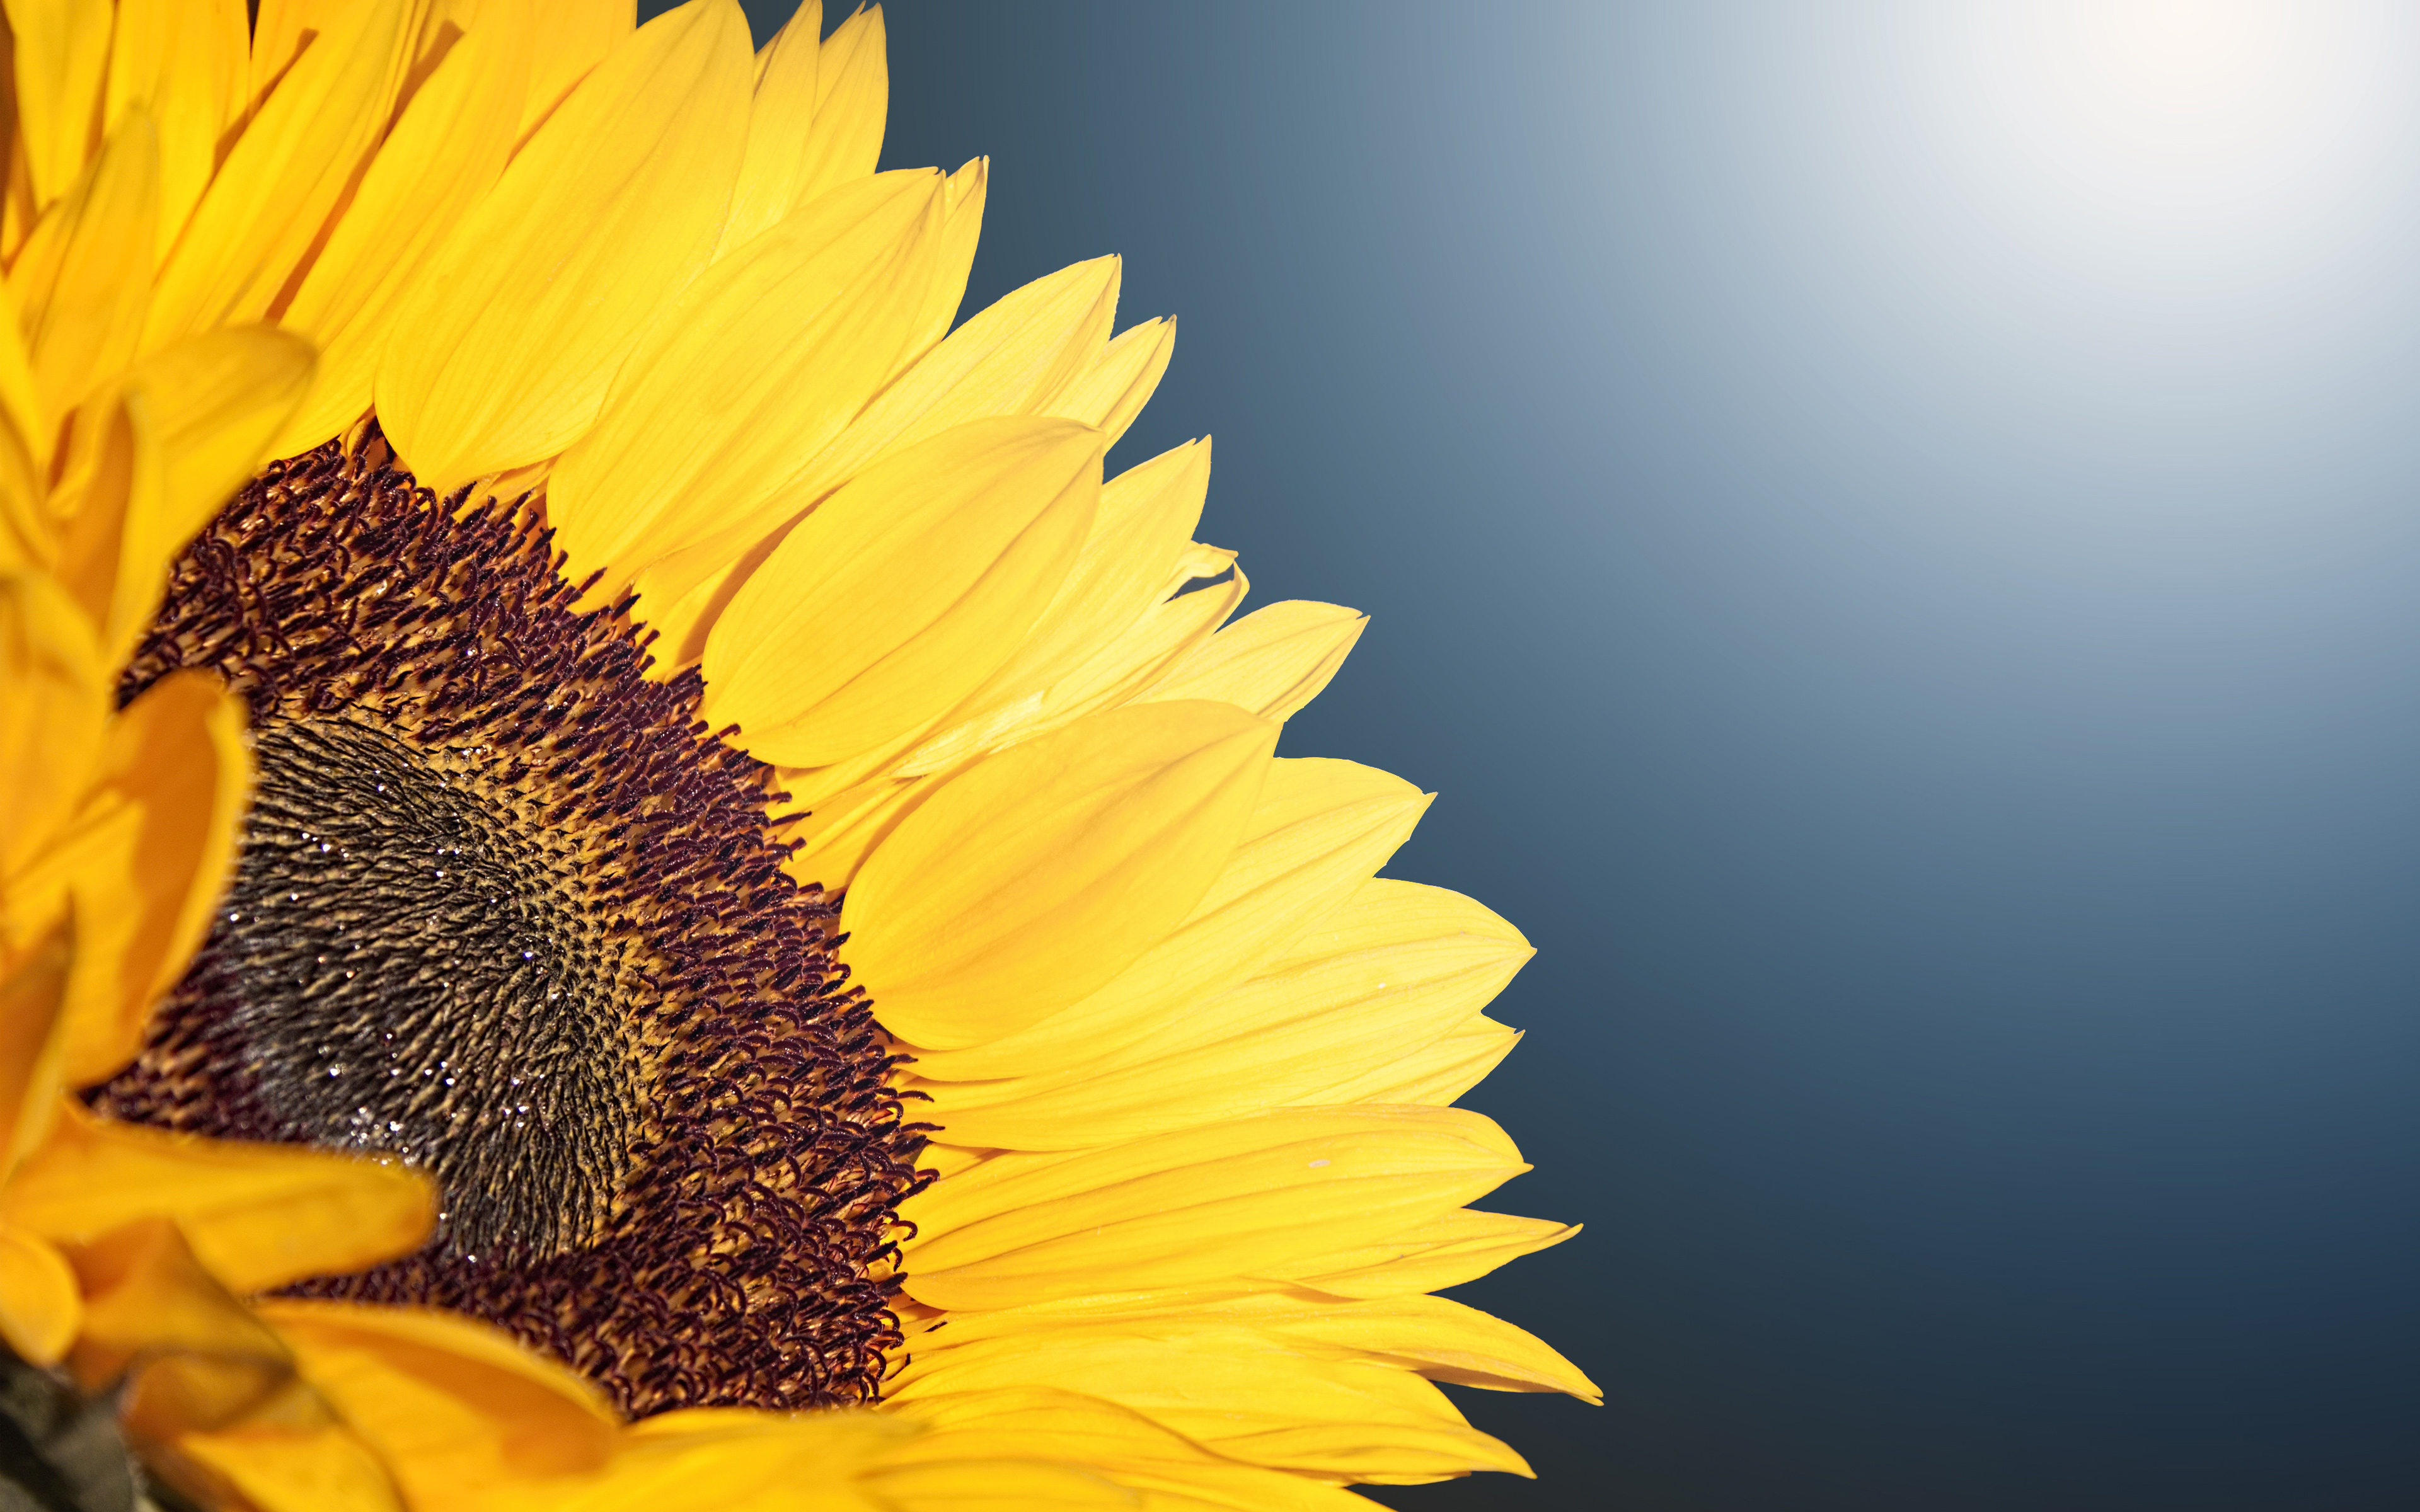 Sunflower 4K